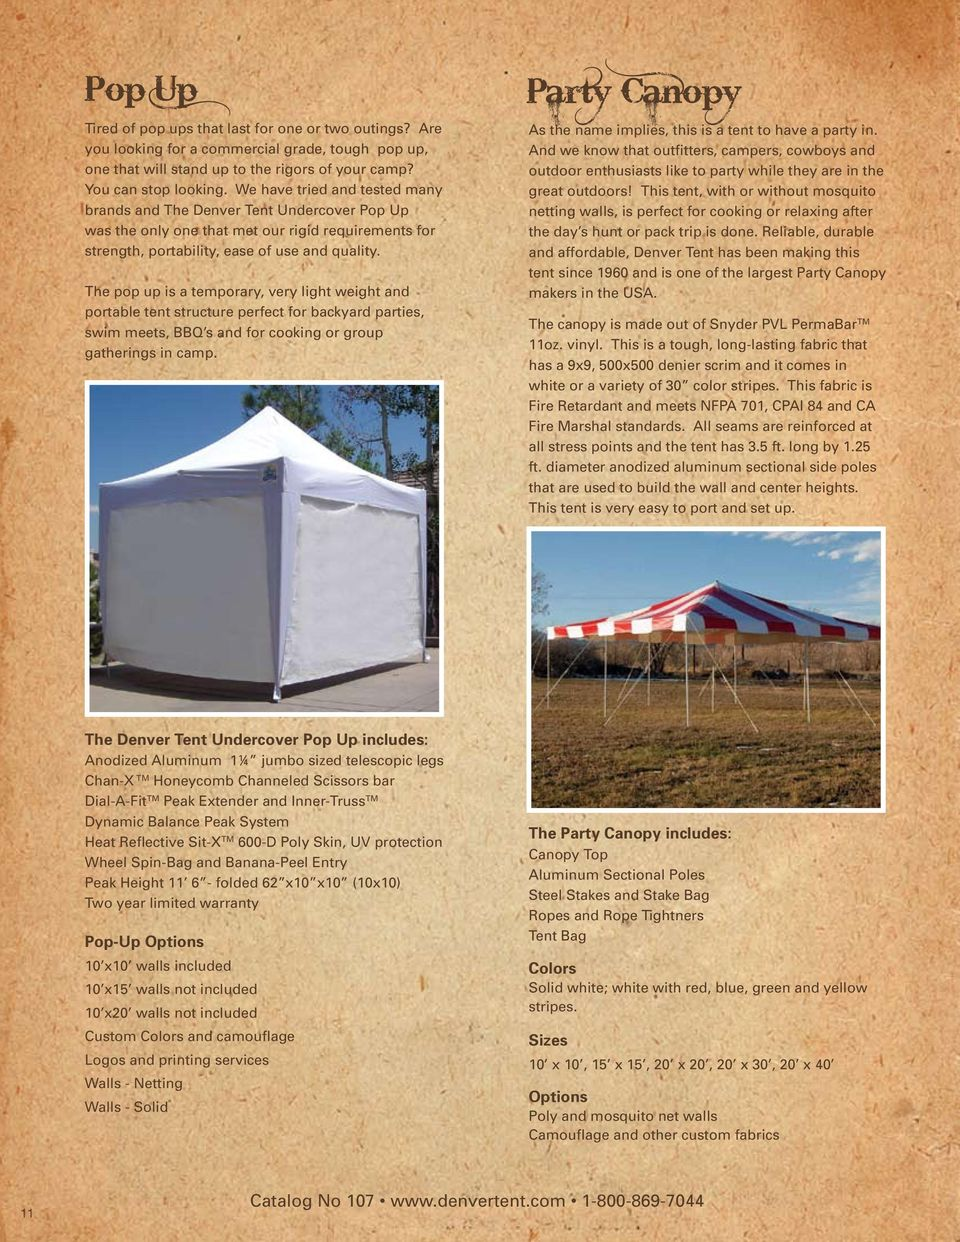 The pop up is a temporary, very light weight and portable tent structure perfect for backyard parties, swim meets, BBQ s and for cooking or group gatherings in camp.